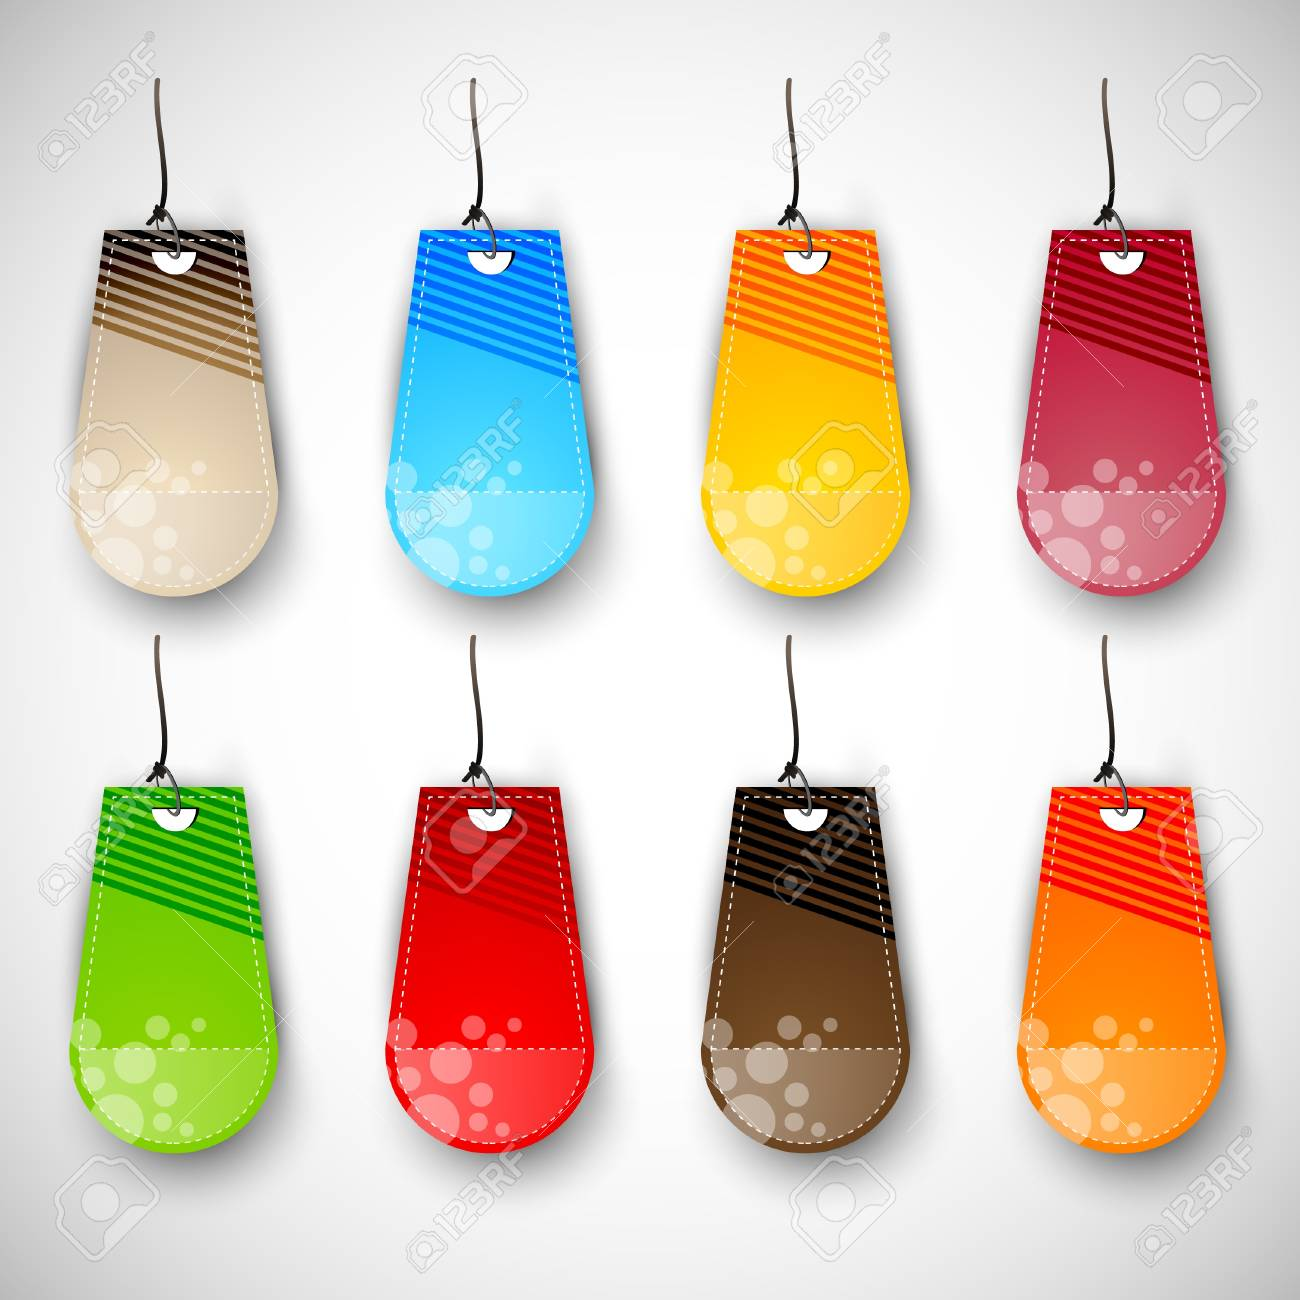 Set of Blank Tags  Labels of Different Colors Stock Vector - 15937746